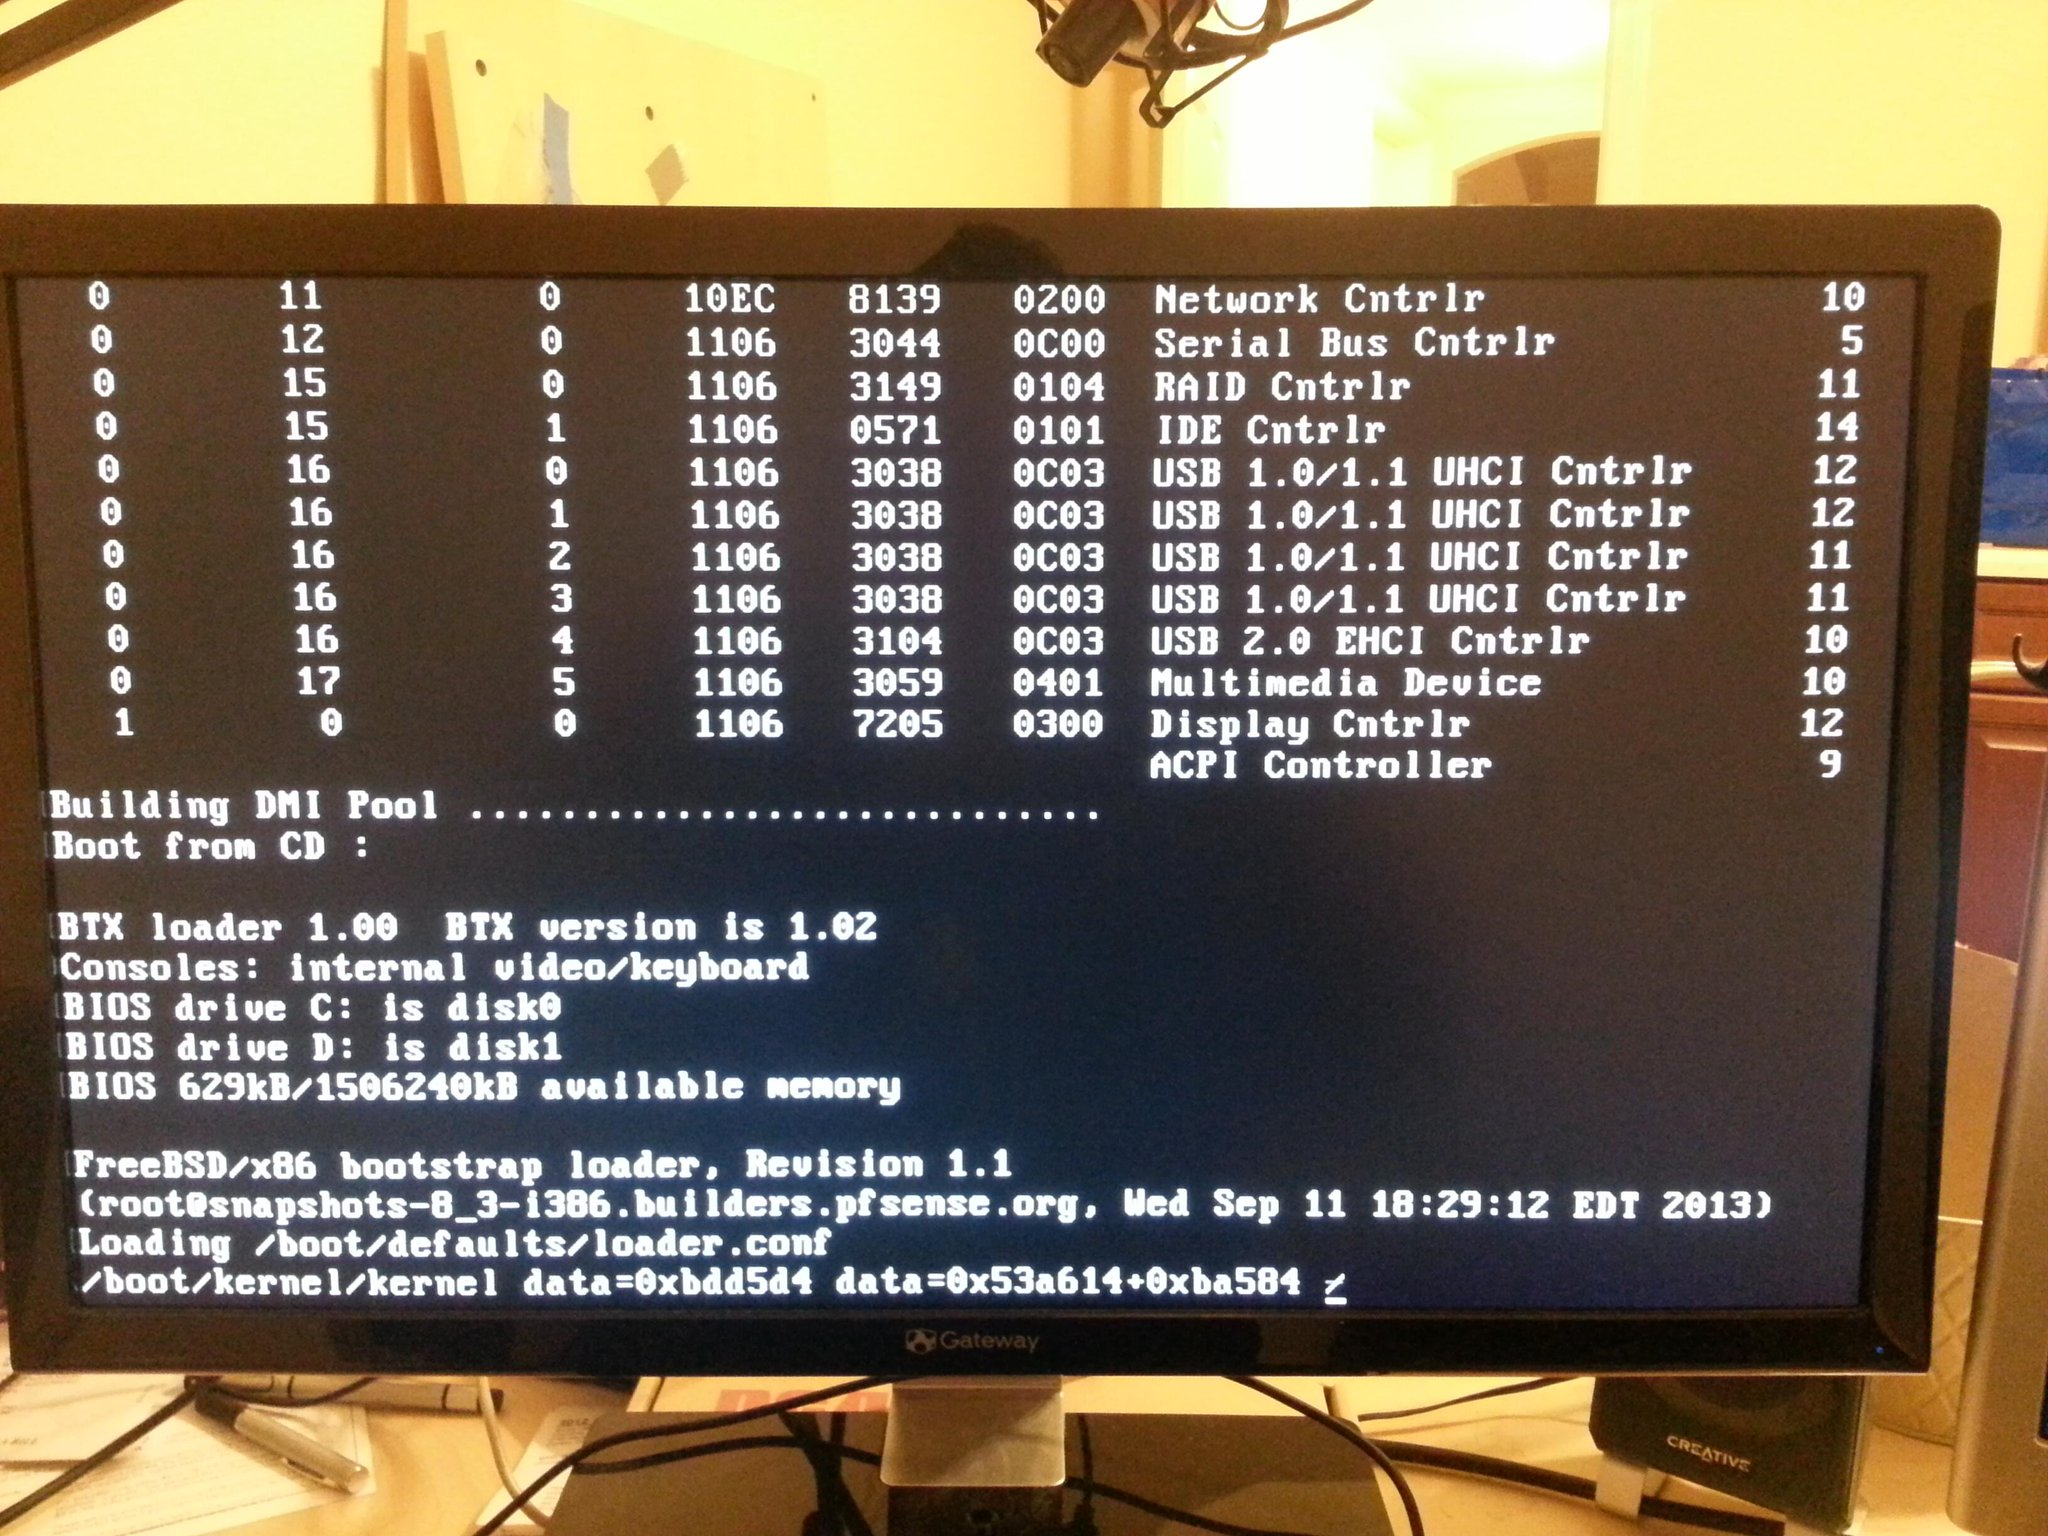 Installing #pfsense on a machine so old it shows IRQ levels when it boots http://t.co/ldaDHFivn9